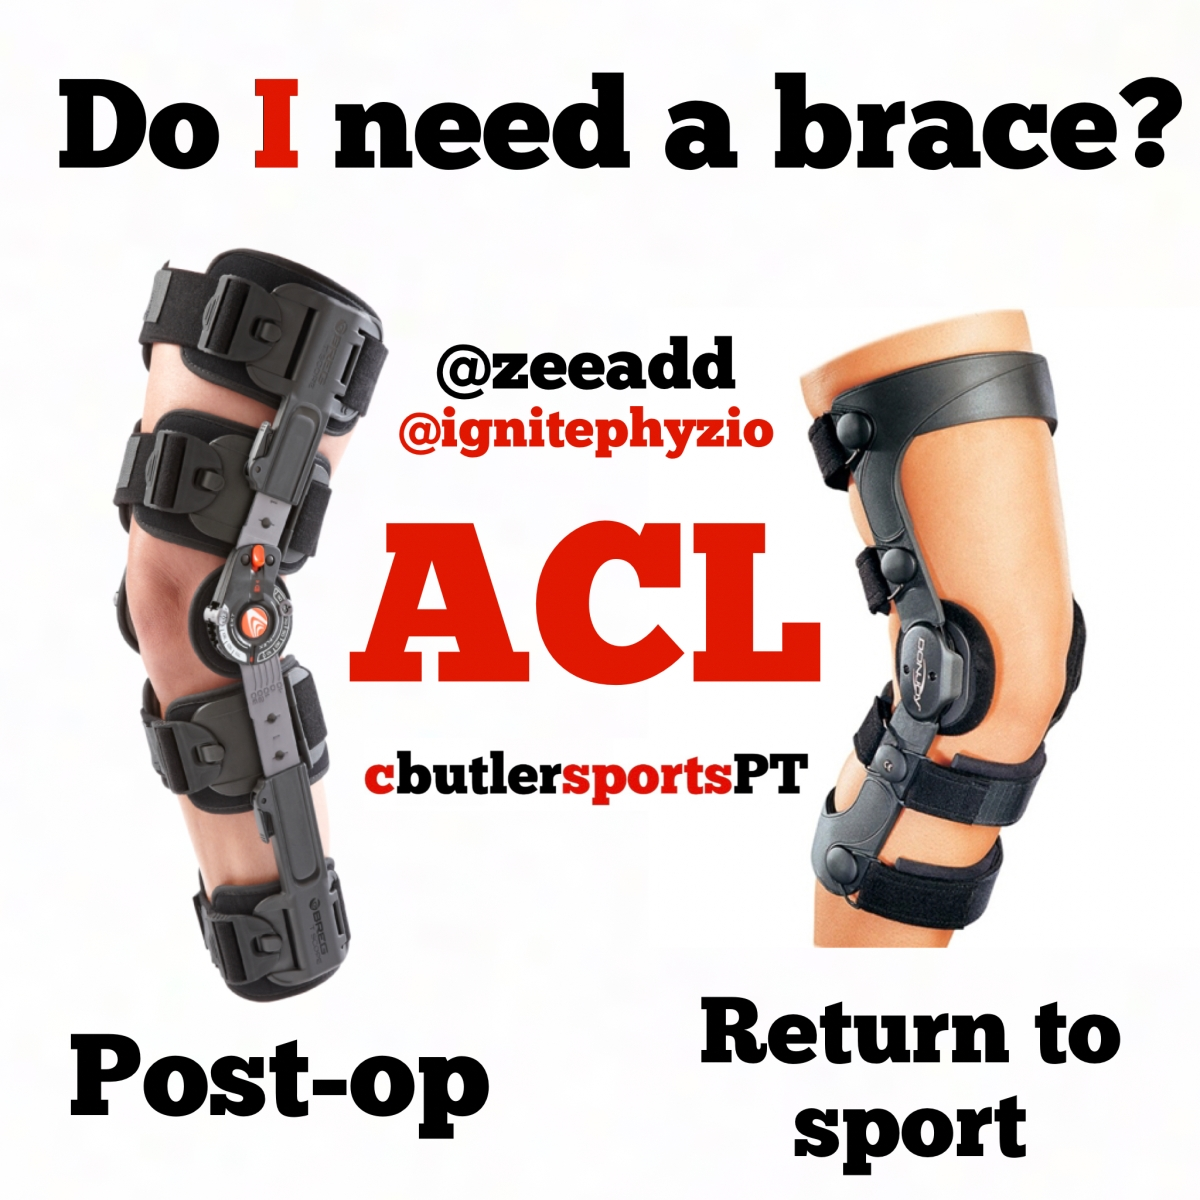 Do I Need a Brace After ACL Surgery?